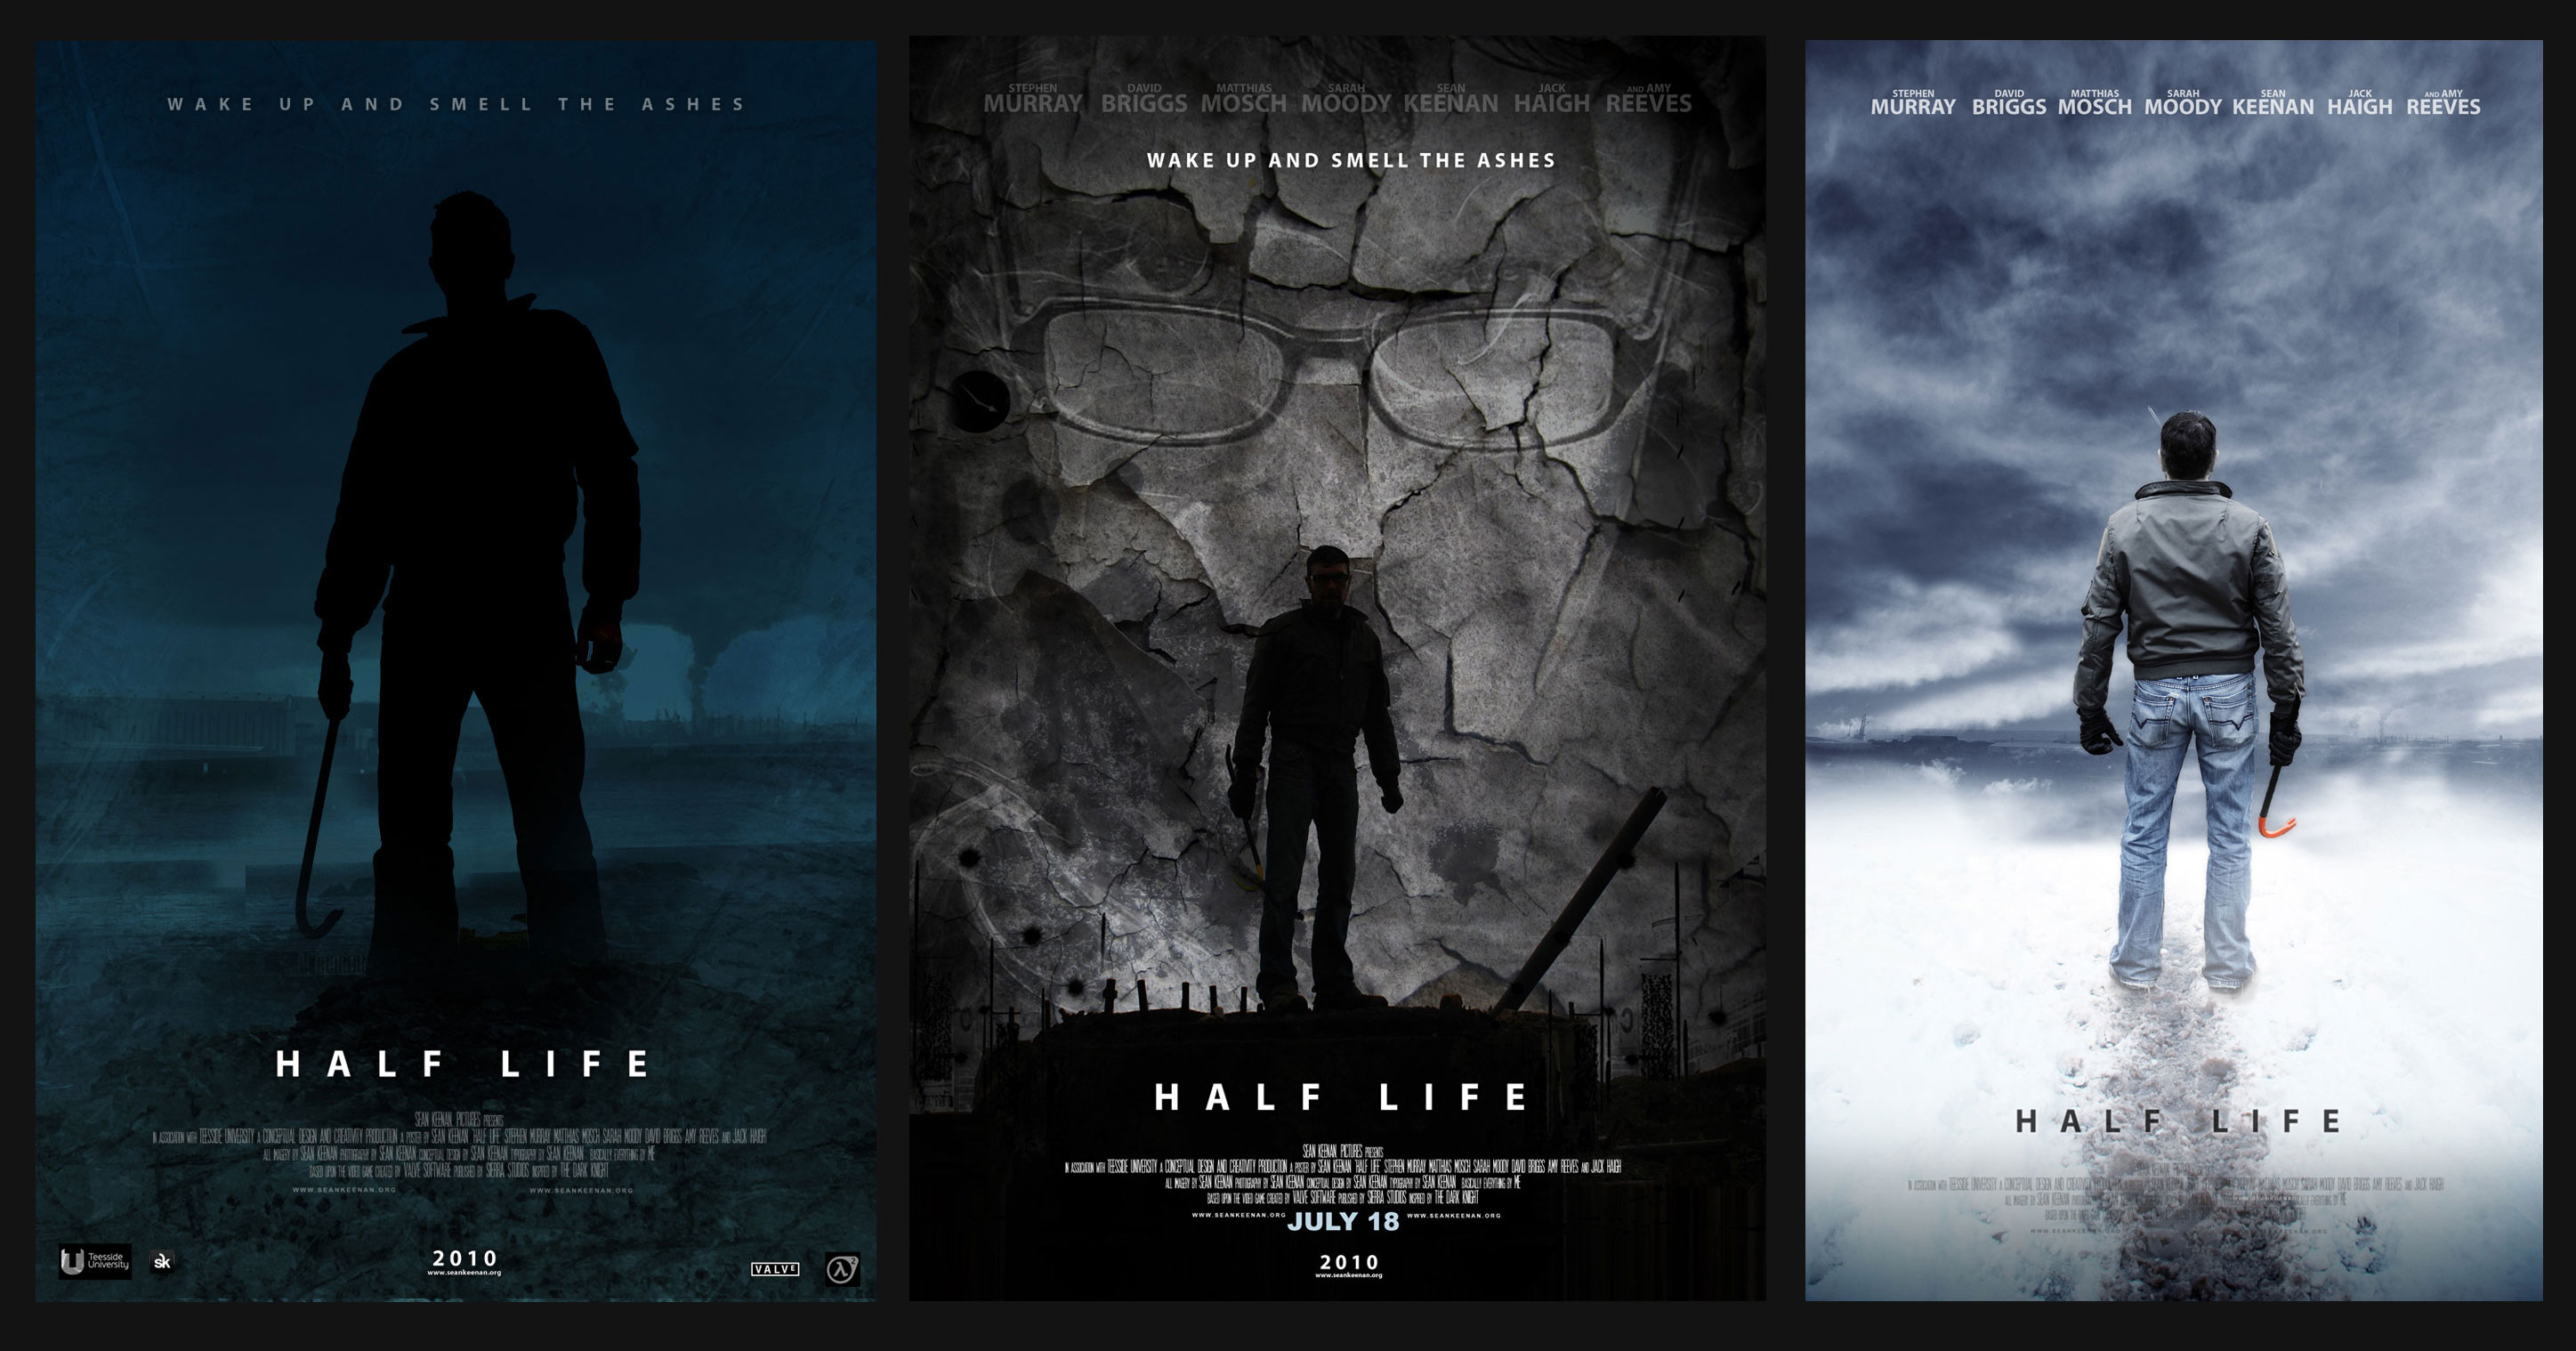 Half Life Movie Mock Up Posters Are Batman Y